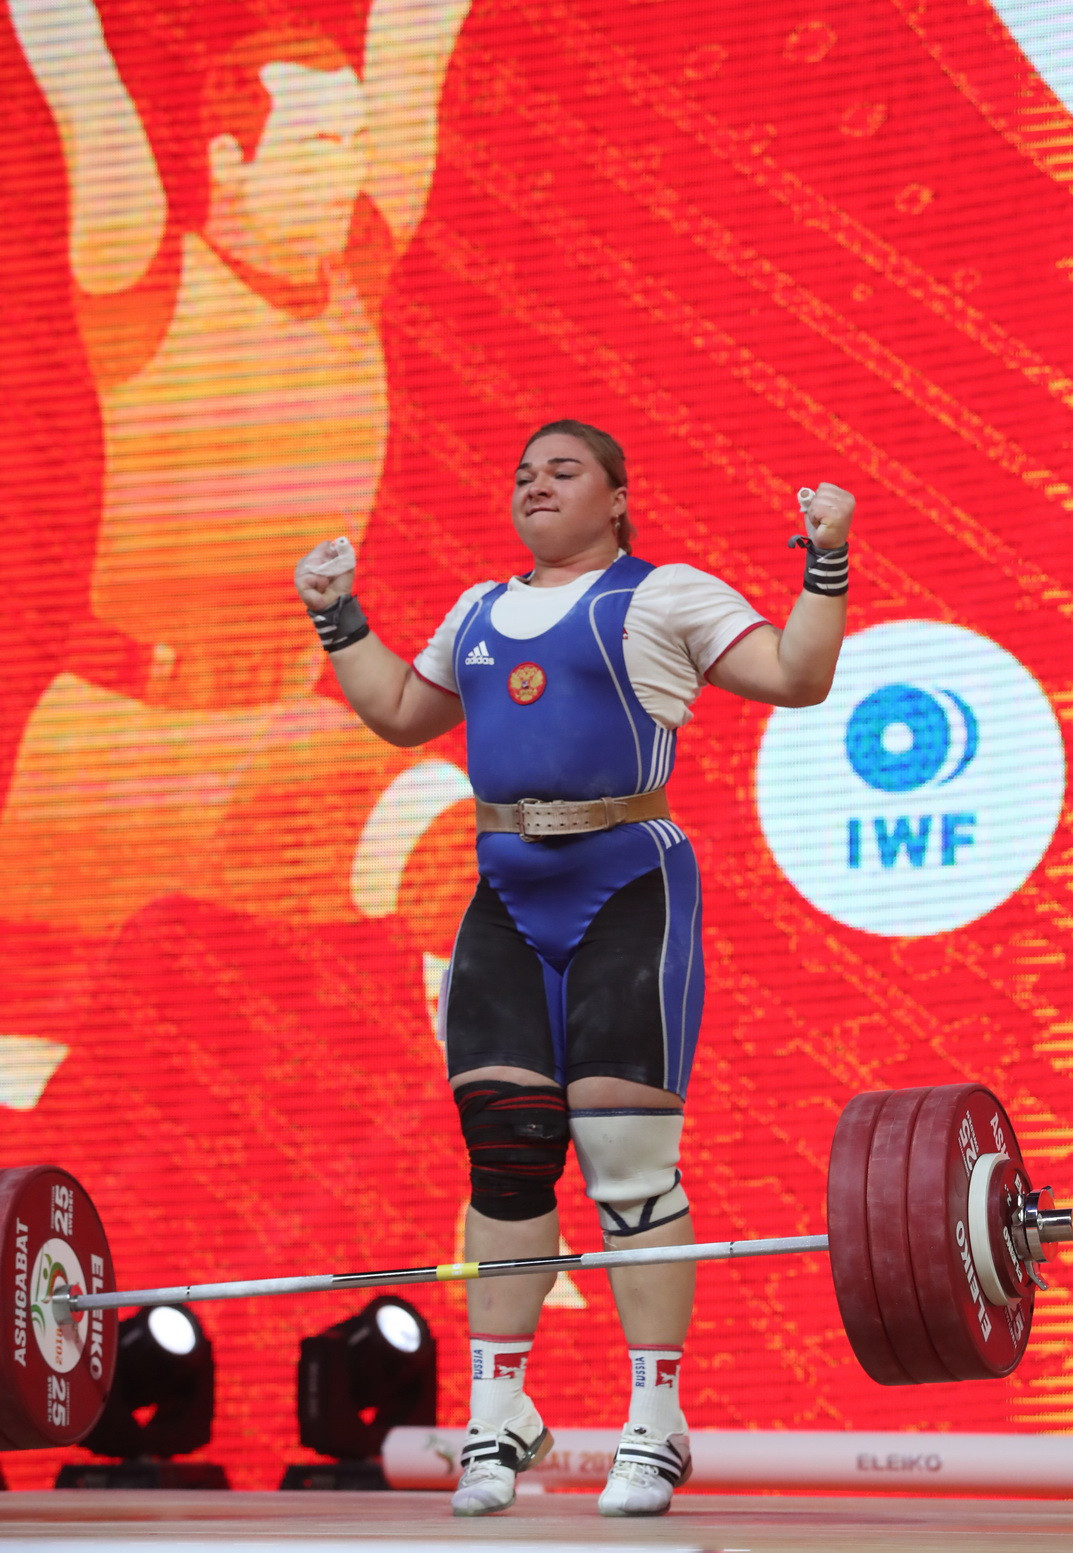 Russia's Kashirina and Georgia's Talakhadze claim top honours on dramatic final day at 2018 IWF World Championships